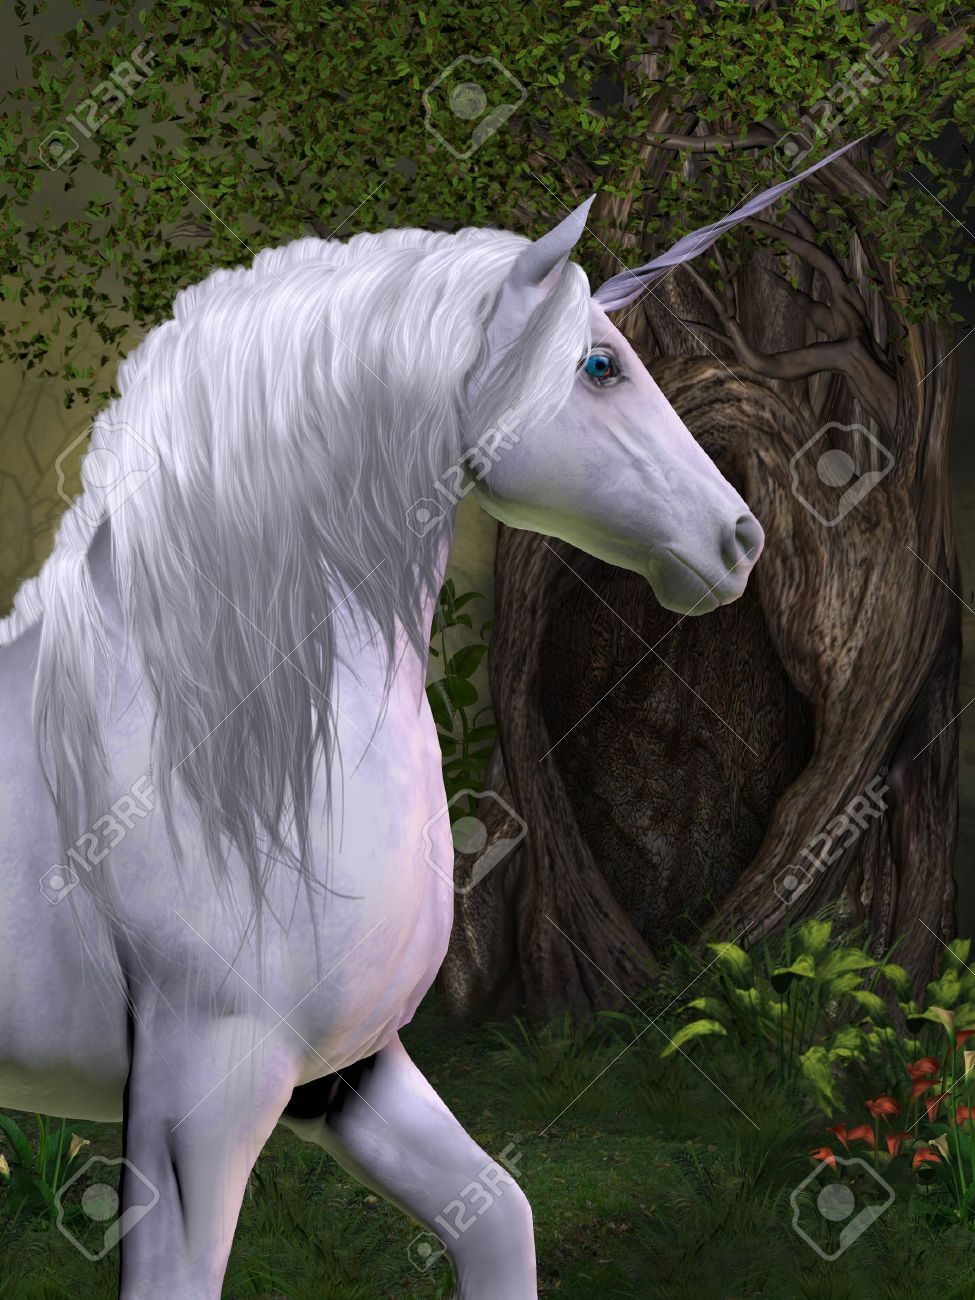 Unicorn Horse A Unicorn Buck Prances In The Magical Forest Stock Photo Picture And Royalty Free Image Image 21017760